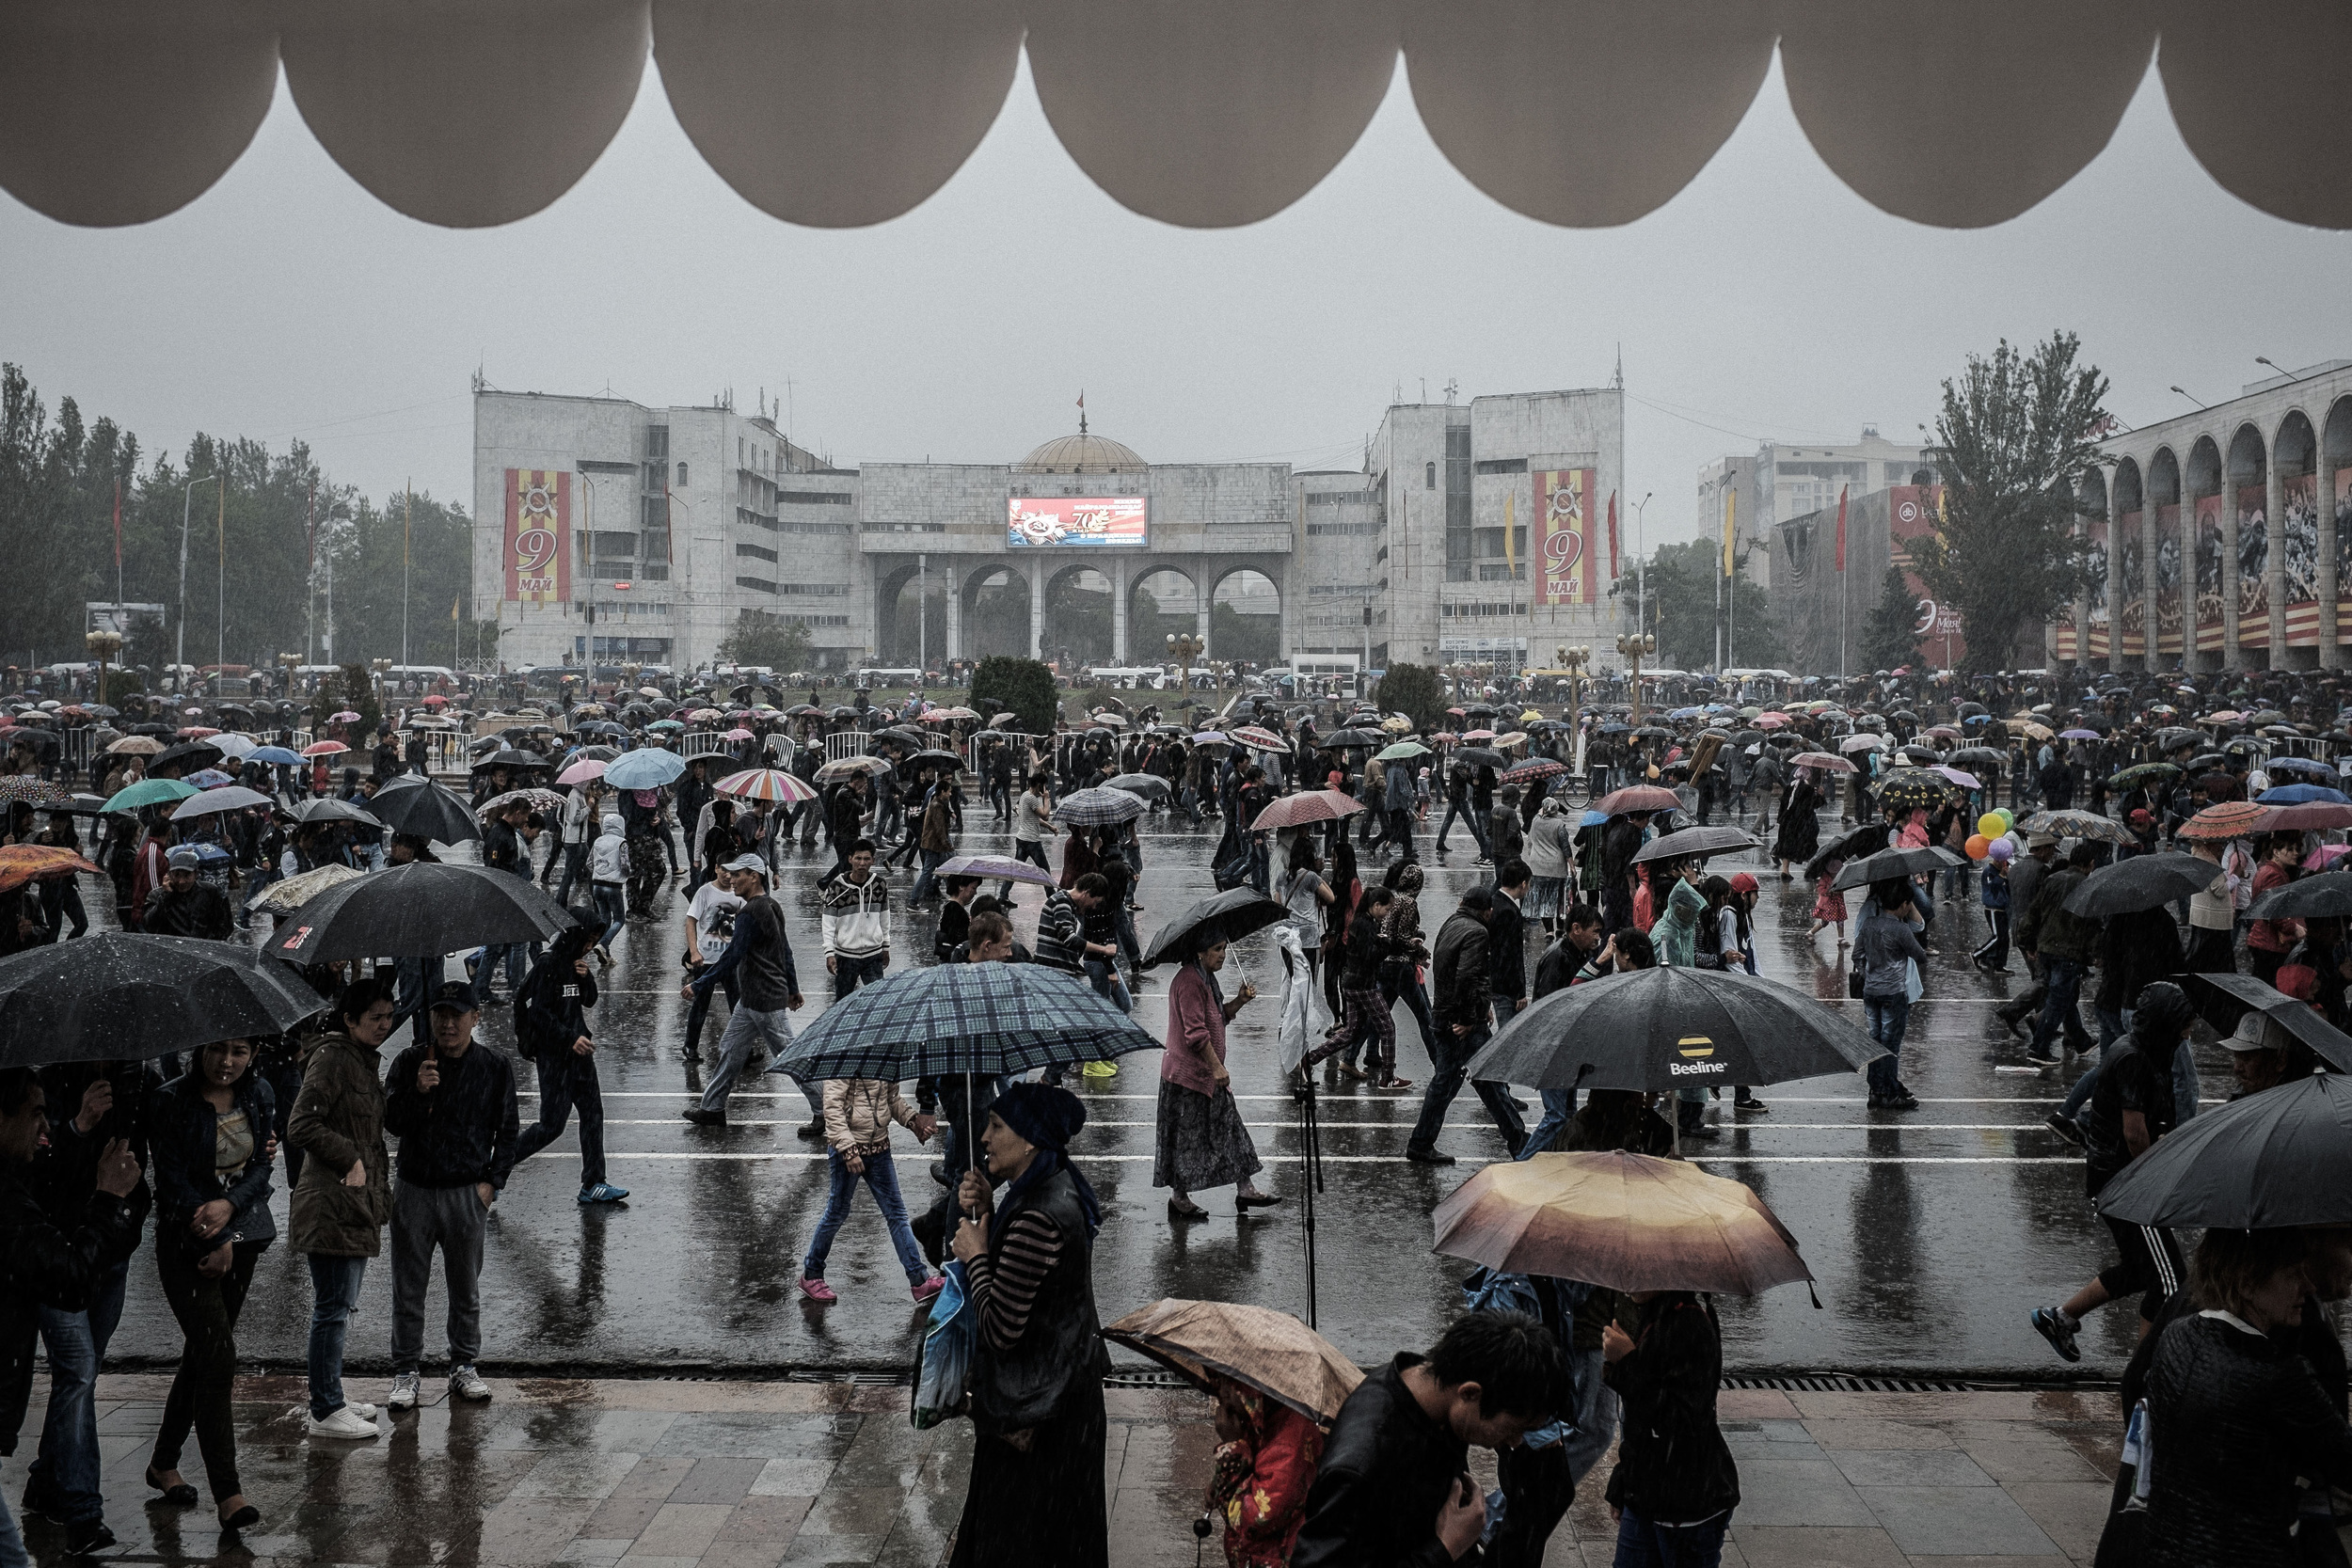 Heavy rainstorm hit Bishkek during the military parade for the 70th anniversary of the Great Victory. Visitors run to get shelter after the end of the event. Ala-too square, Bishkek, May 9, 2015